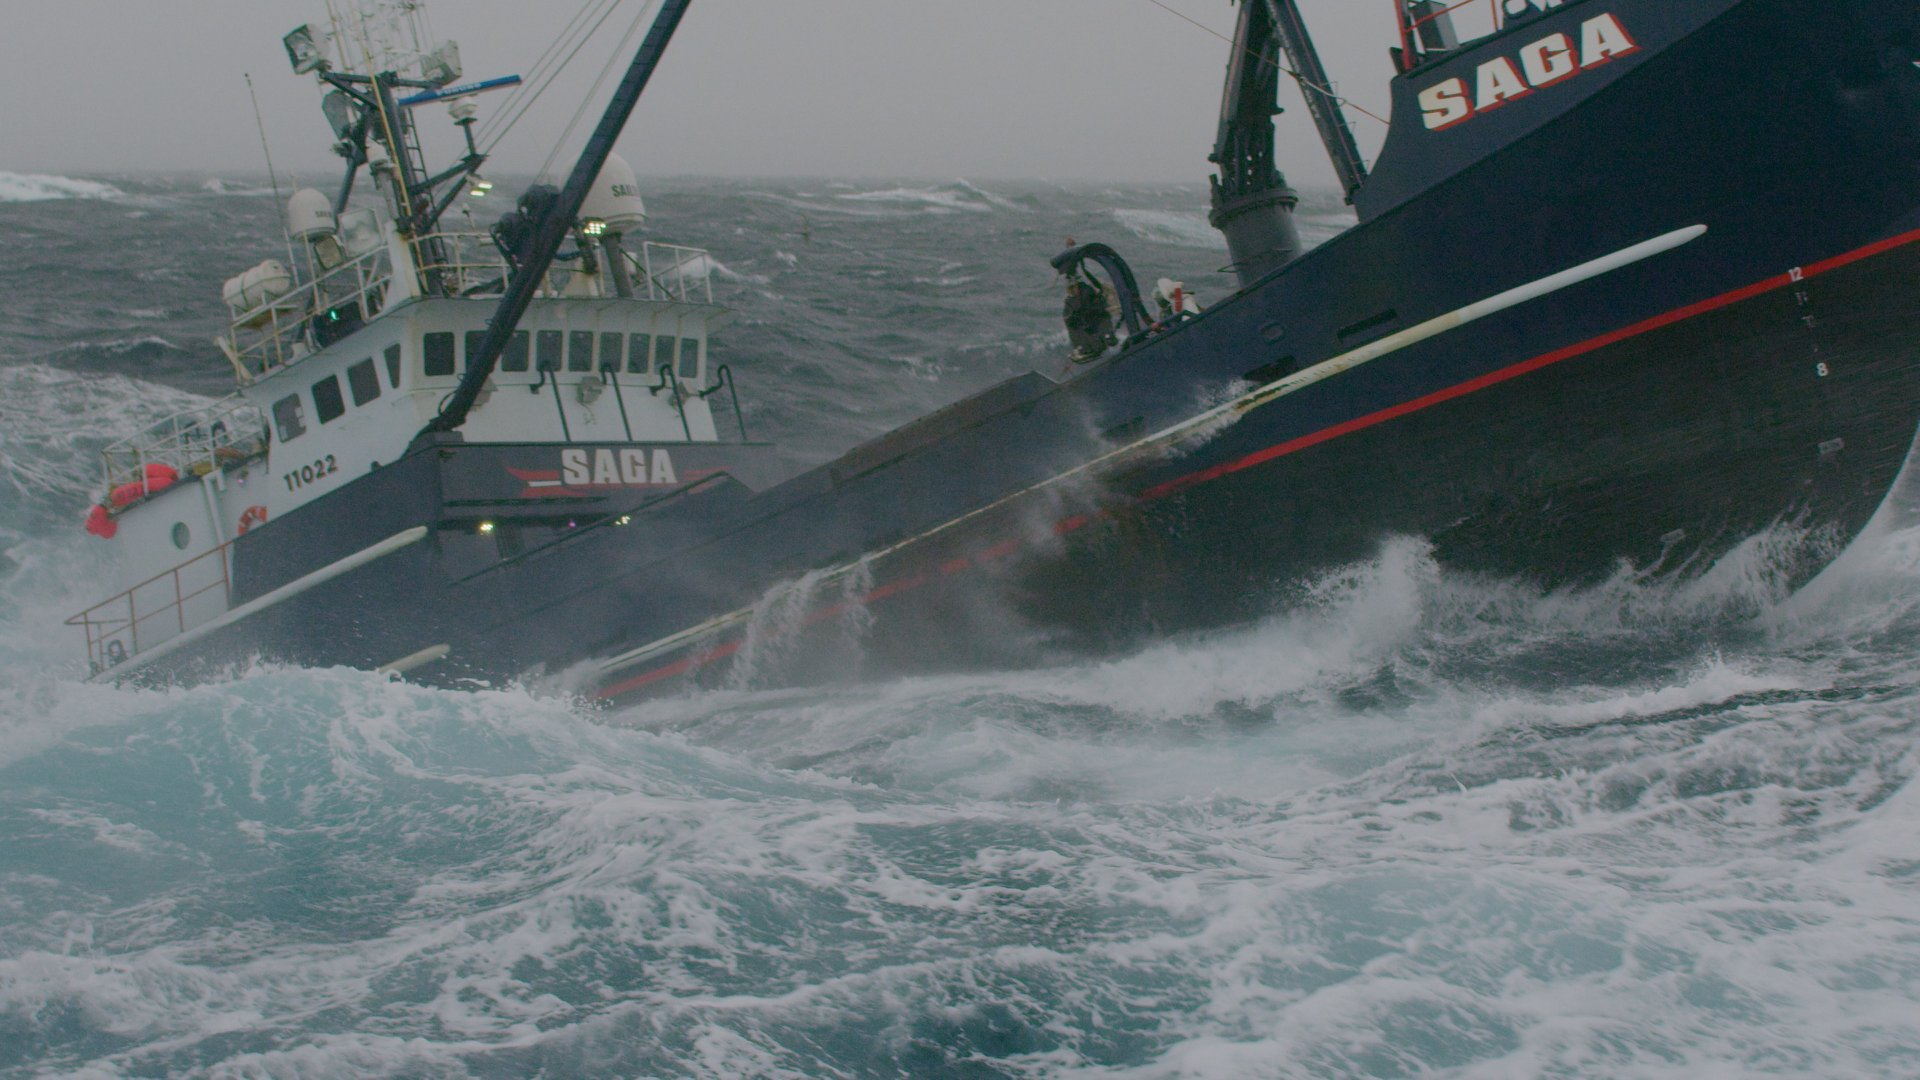 Deadliest-Catch-Saga-Jake-Anderson.jpg